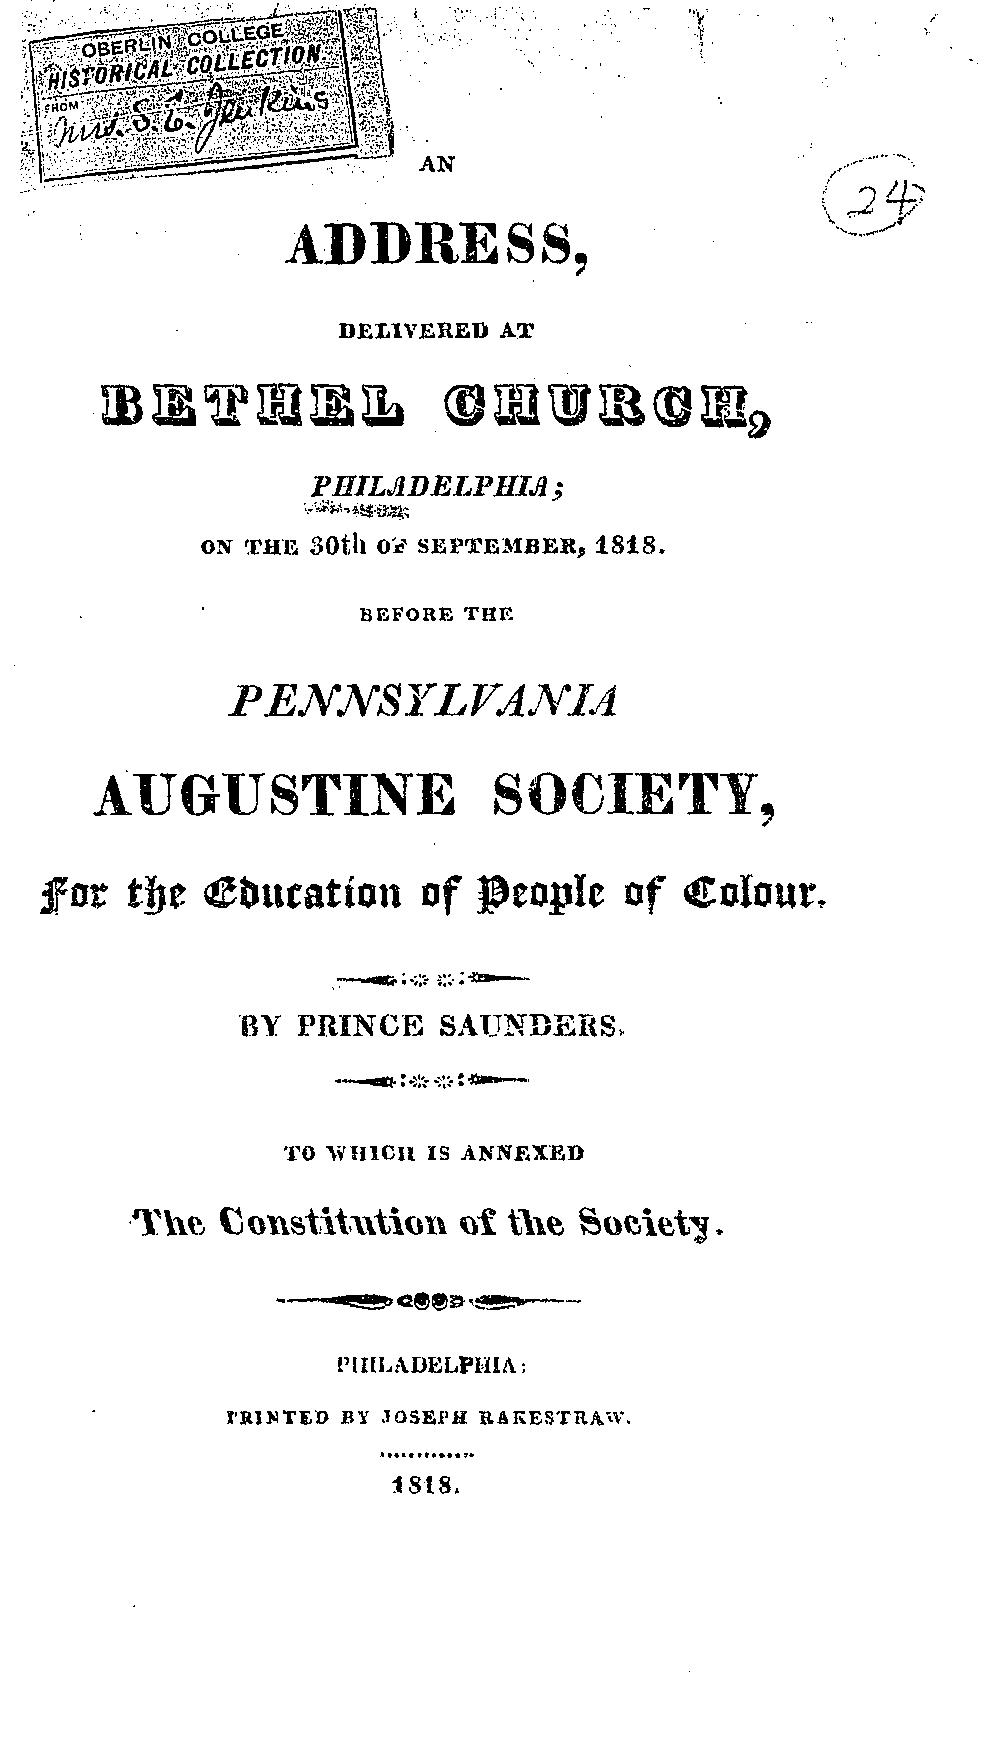 Saunders Address to Augustine Society.jpg